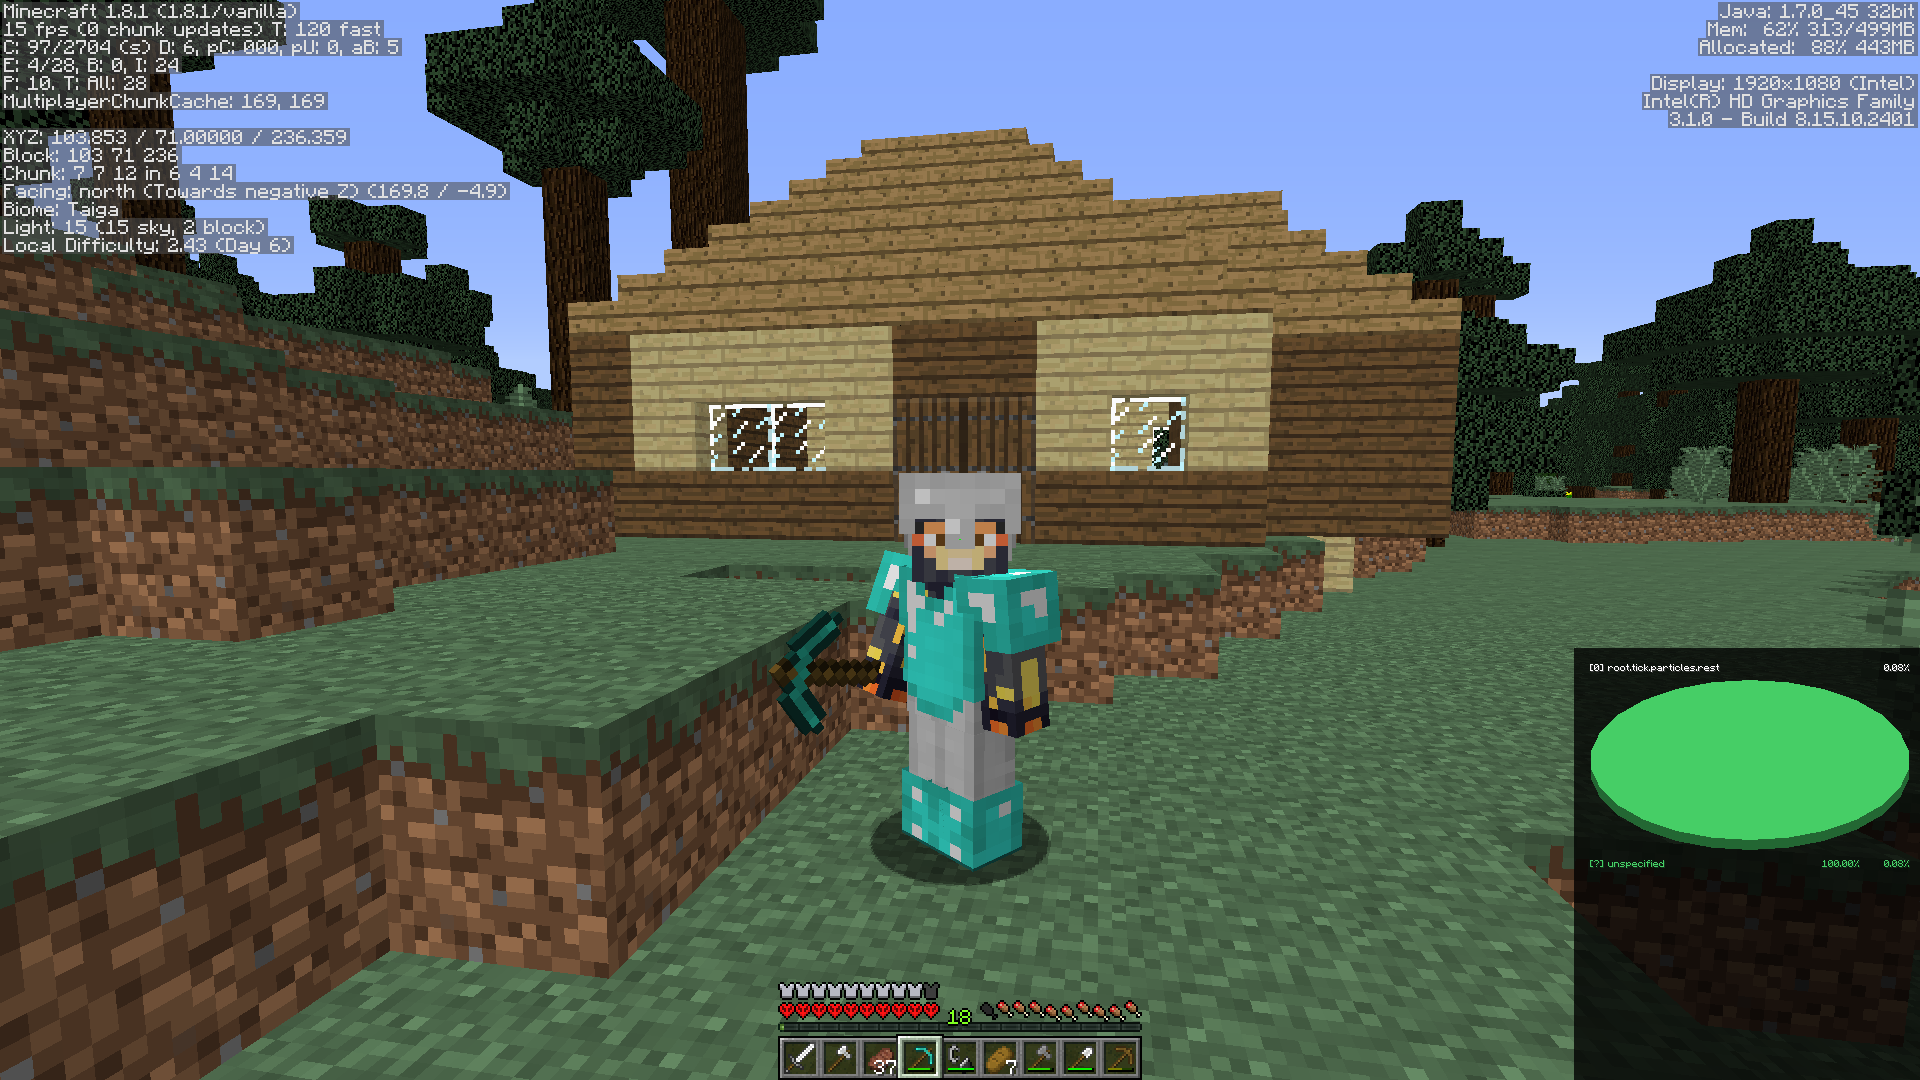 My Survival House - Survival Mode - Minecraft: Java